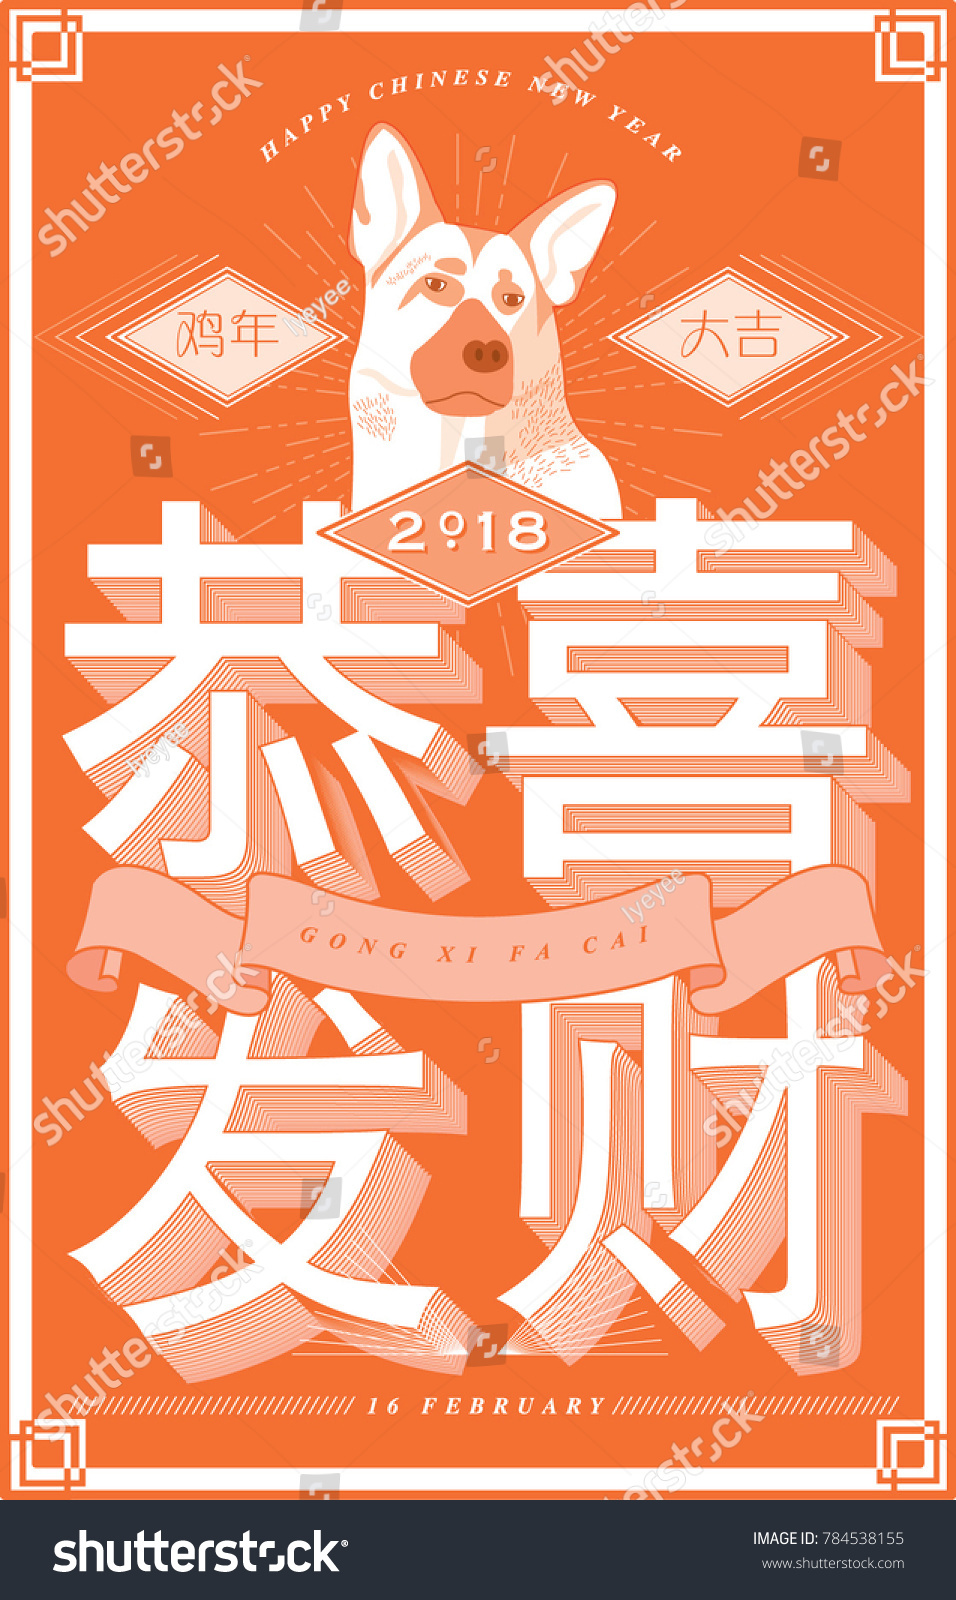 Chinese new year dog greetings template stock vector 784538155 chinese new year dog greetings template stock vector 784538155 shutterstock m4hsunfo